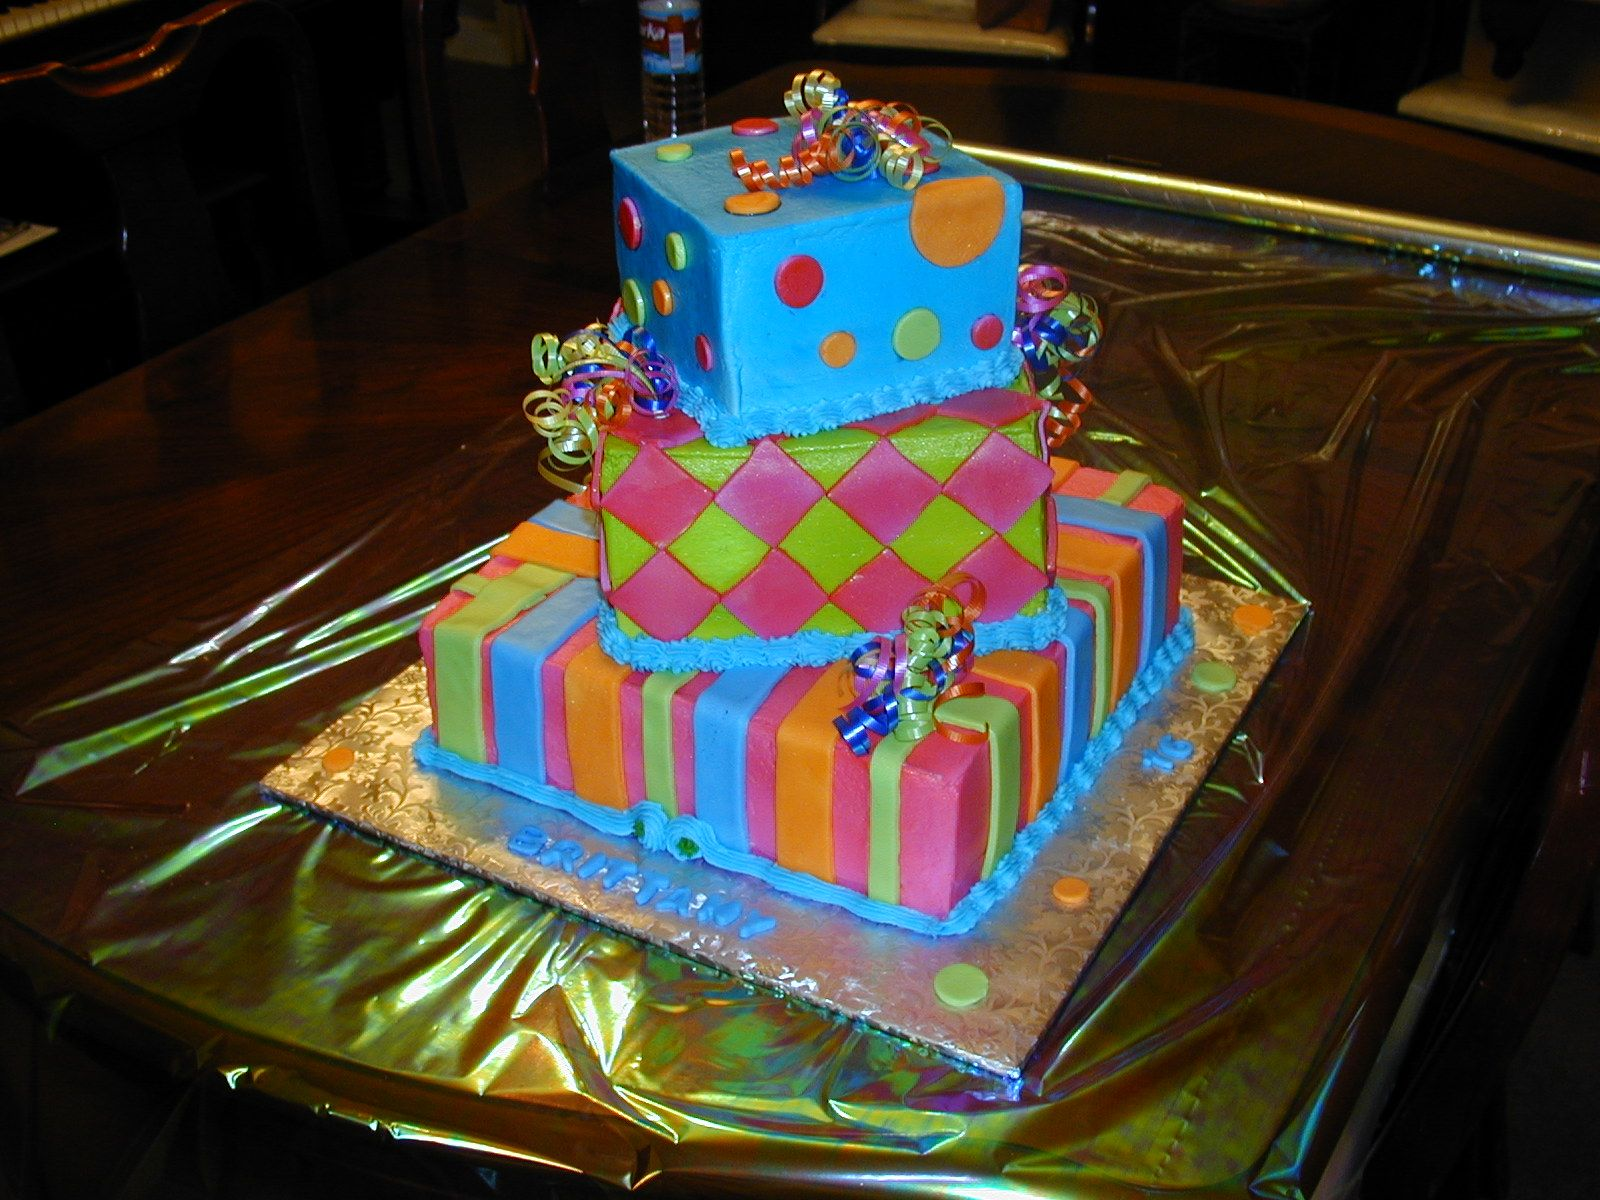 cake designs for a 13 year old girl this cake was designed by the